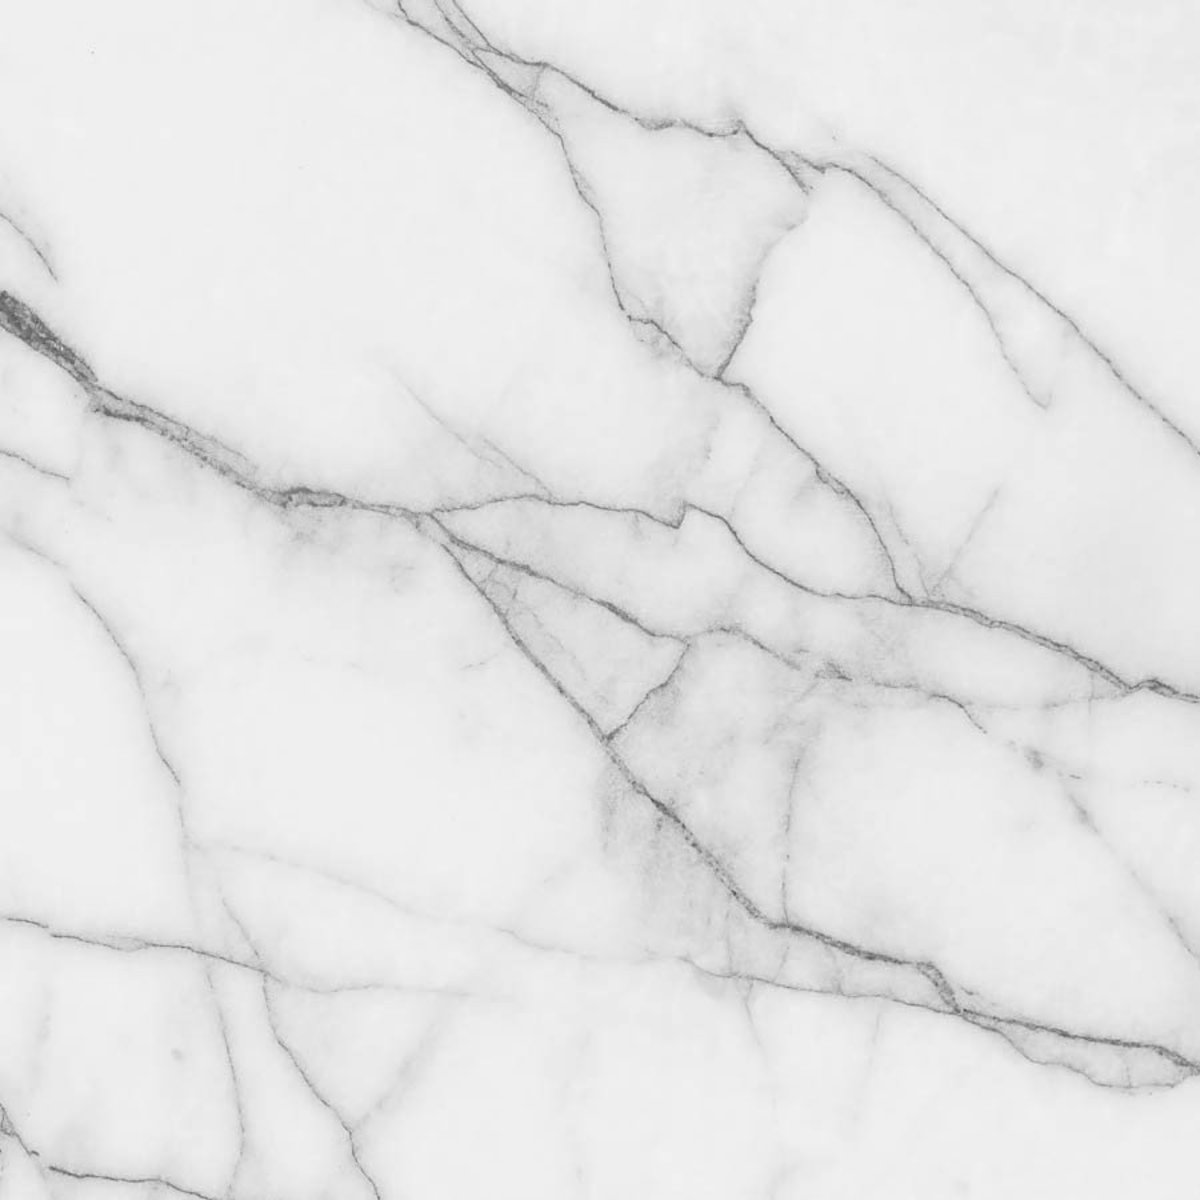 White Marble Texture With Grey Veins Wall Mural Marble Wallpaper Murals Your Way